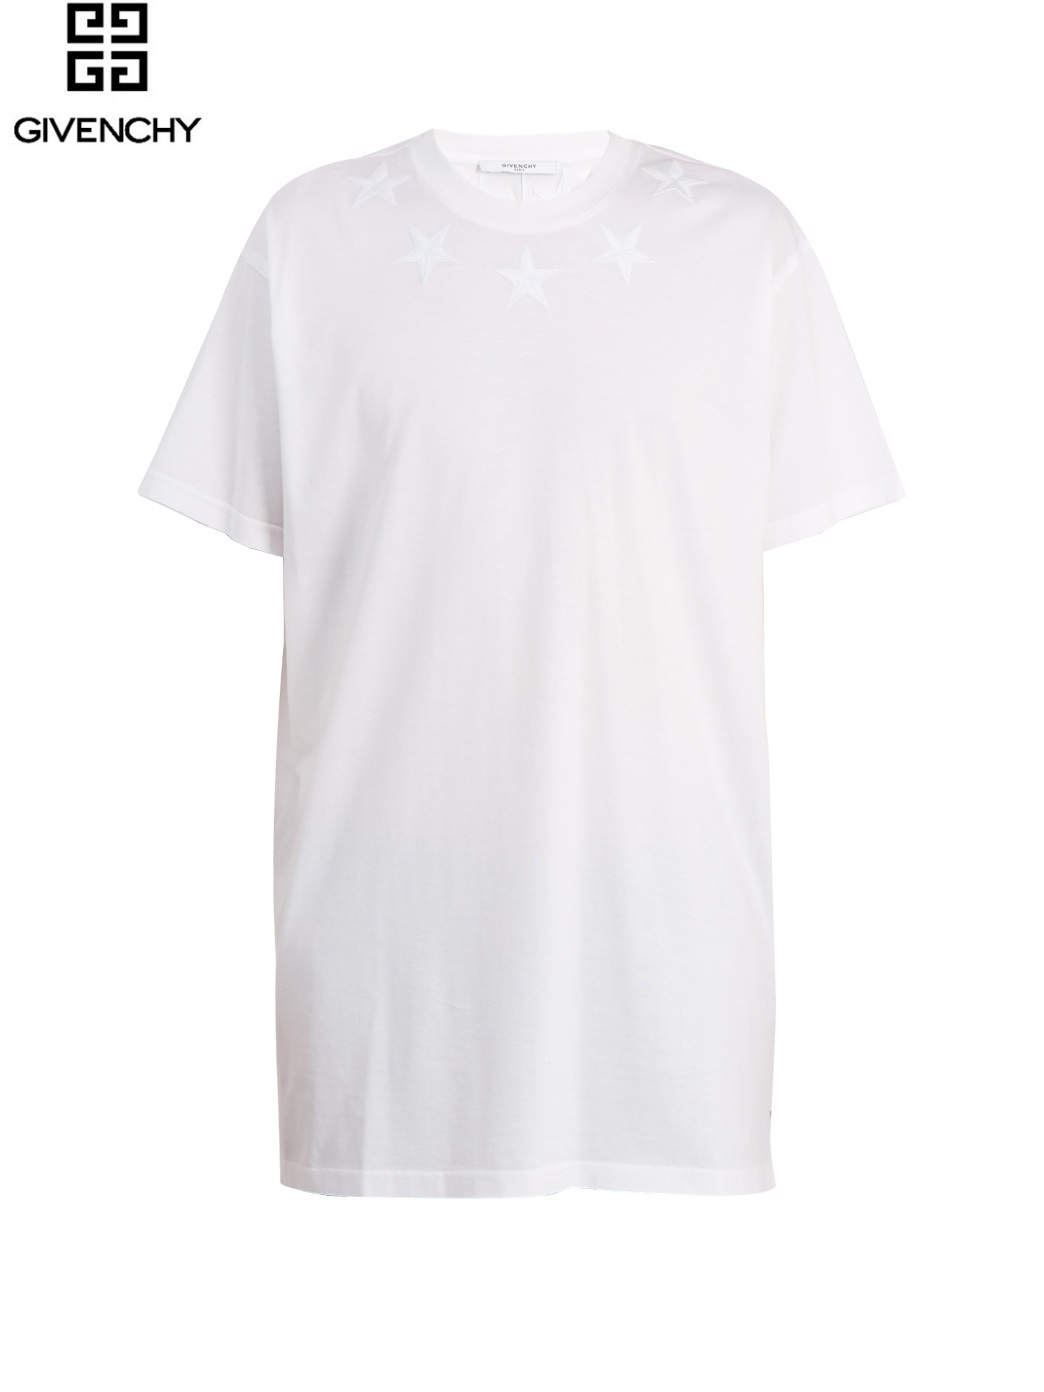 【GIVENCHY★送関込】Cuban-fit スターアップリケ Tシャツ/WH